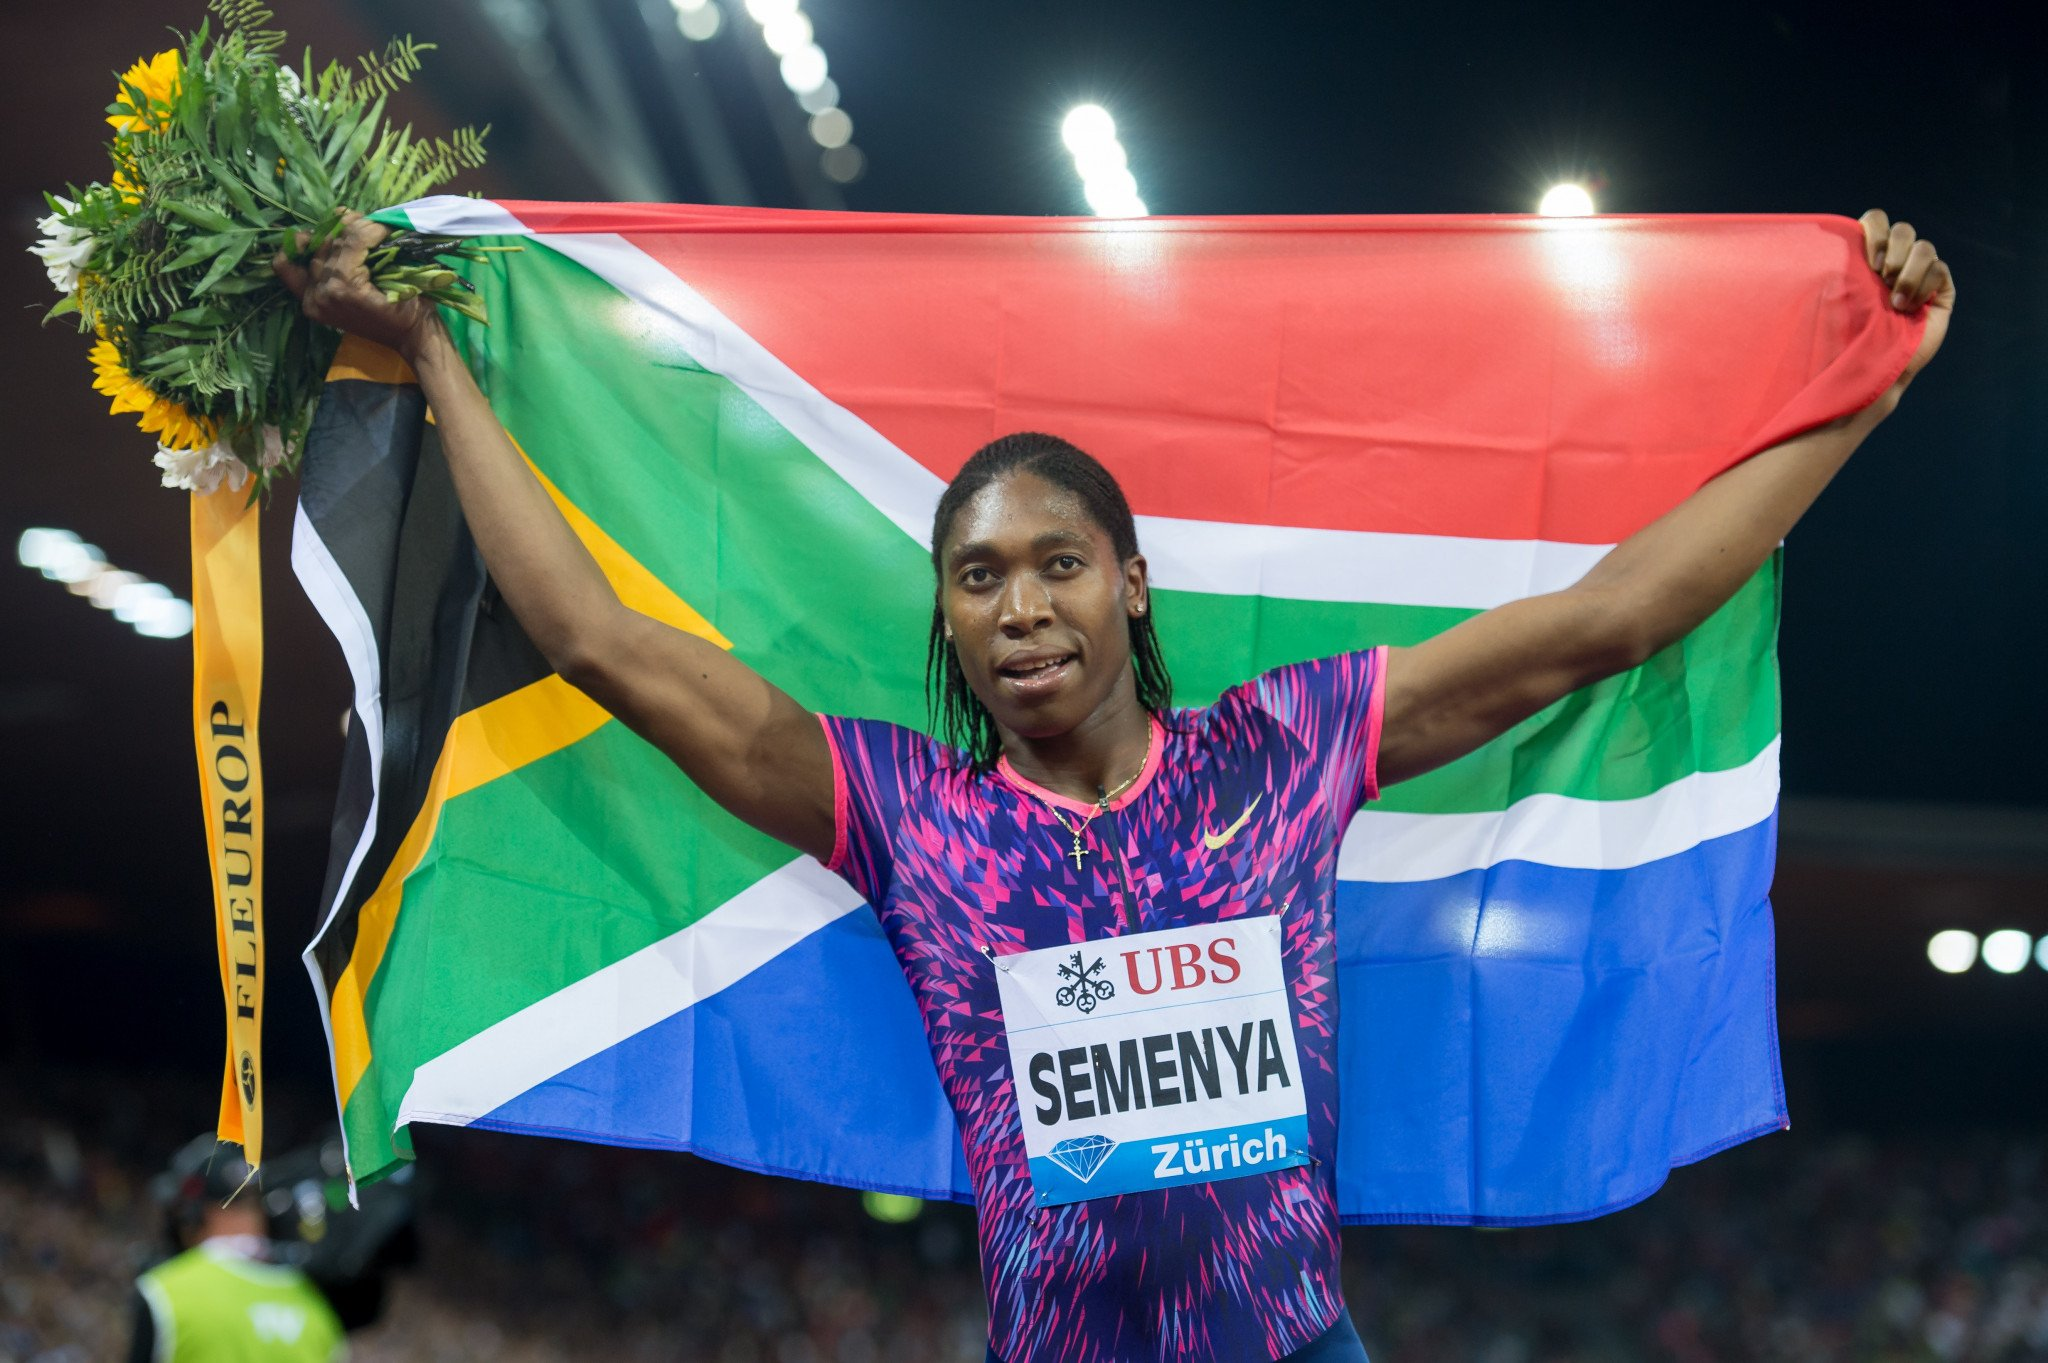 Two-time Olympic gold medallist Semenya headlines South Africa's team for Gold Coast 2018